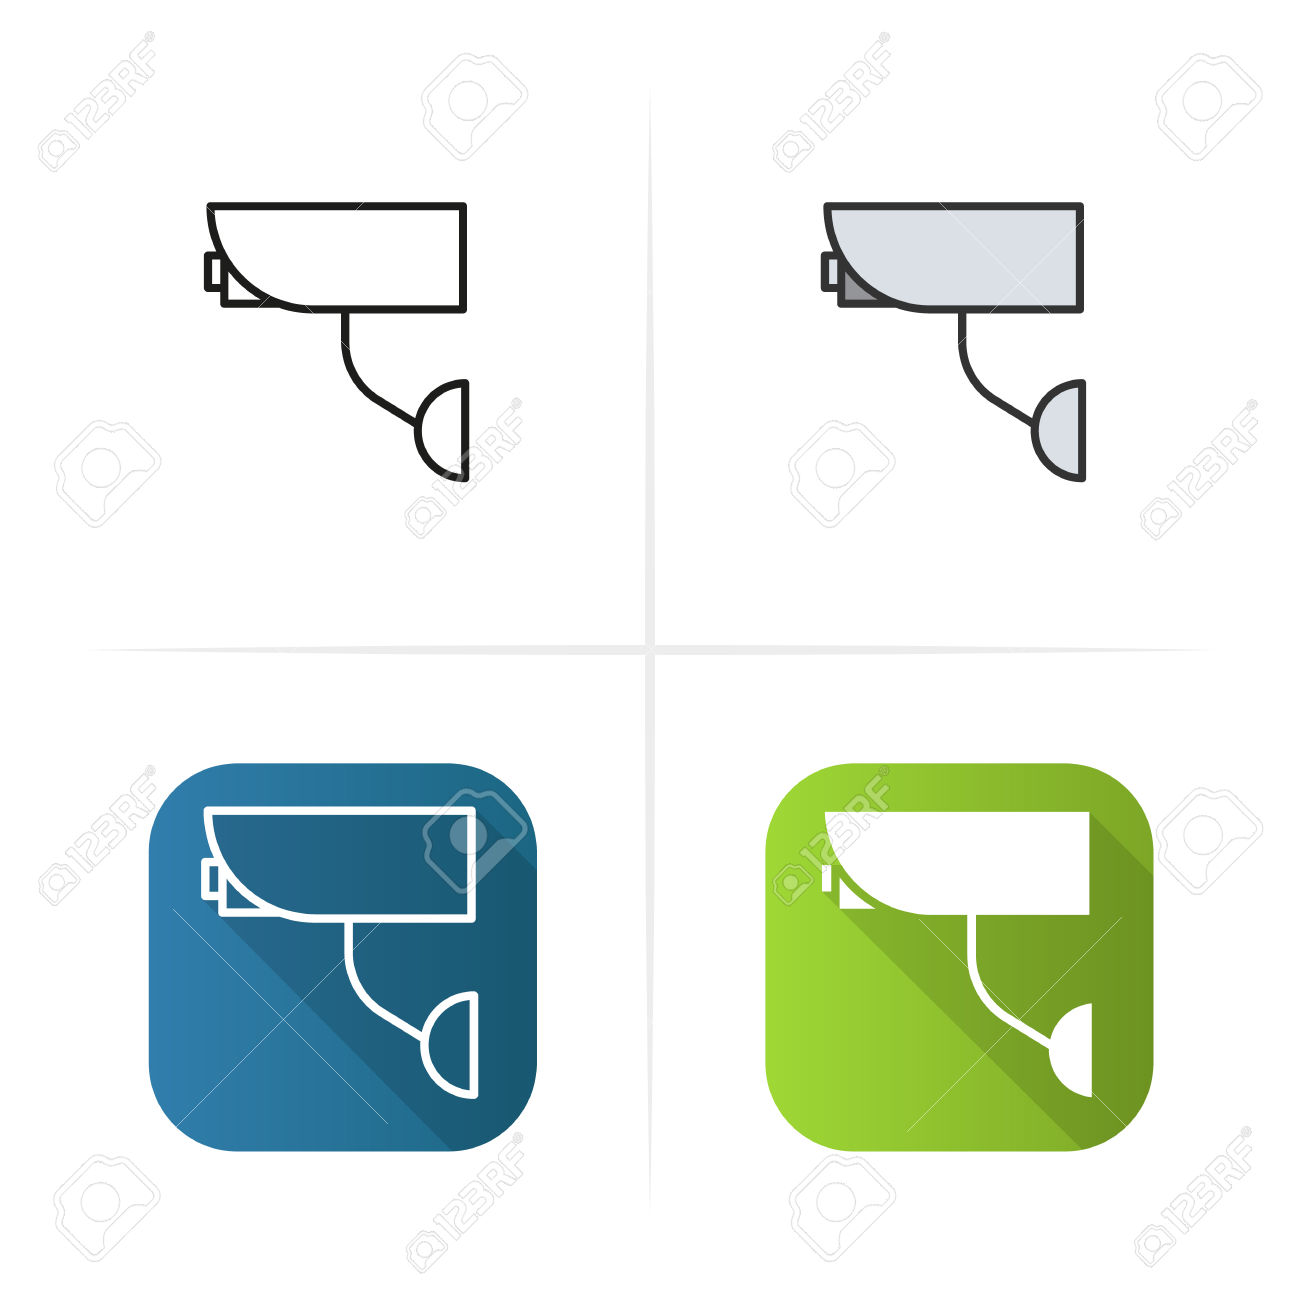 Surveillance Camera Icon. Flat Design, Linear And Color Styles.